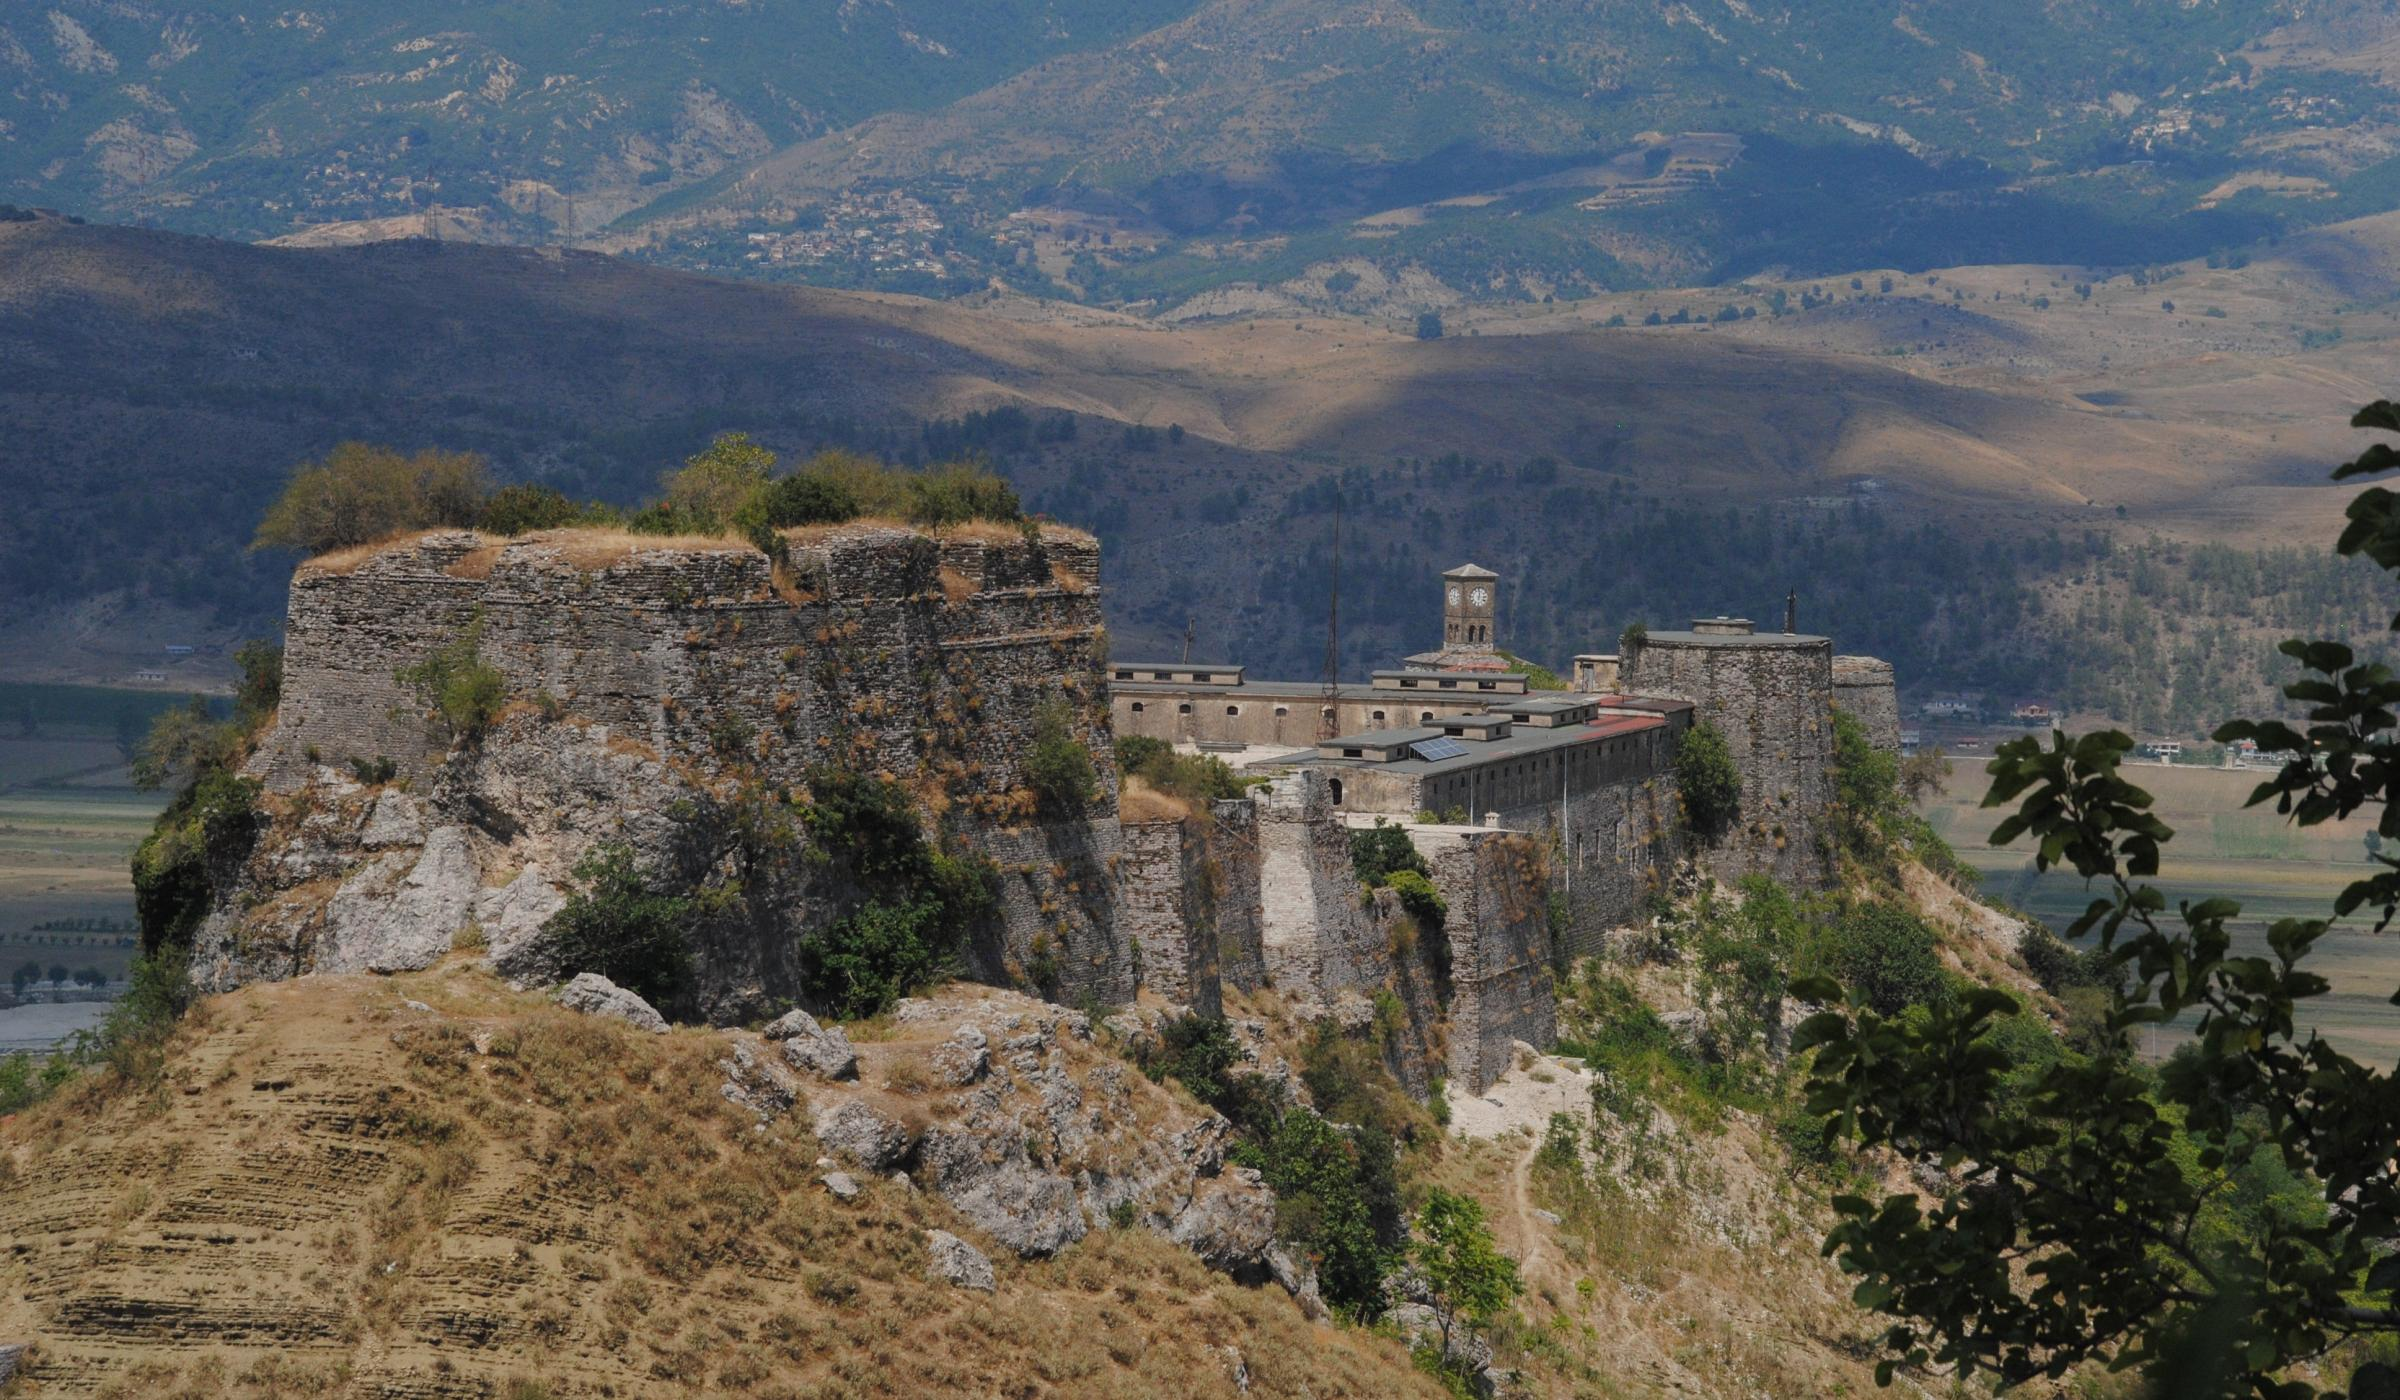 The castle of Gjirokaster